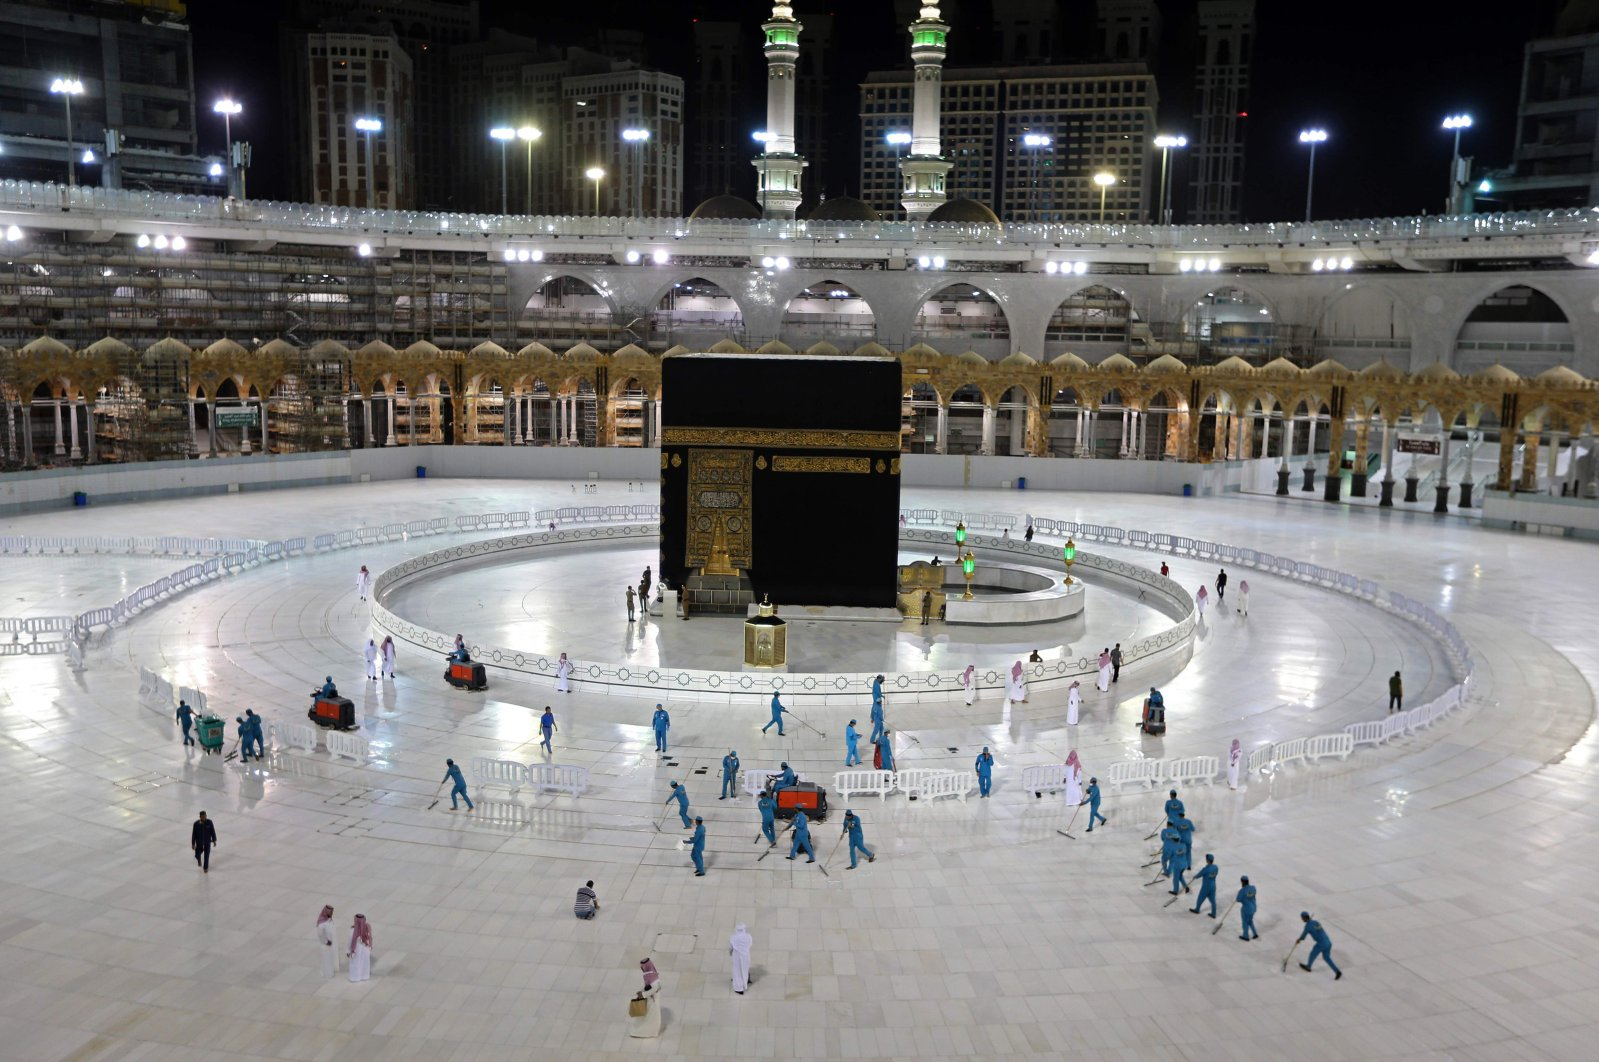 Sanitation workers disinfect the area around the Kaaba in Mecca's Grand Mosque, Saudi Arabia, April 24, 2020. (AFP Photo)